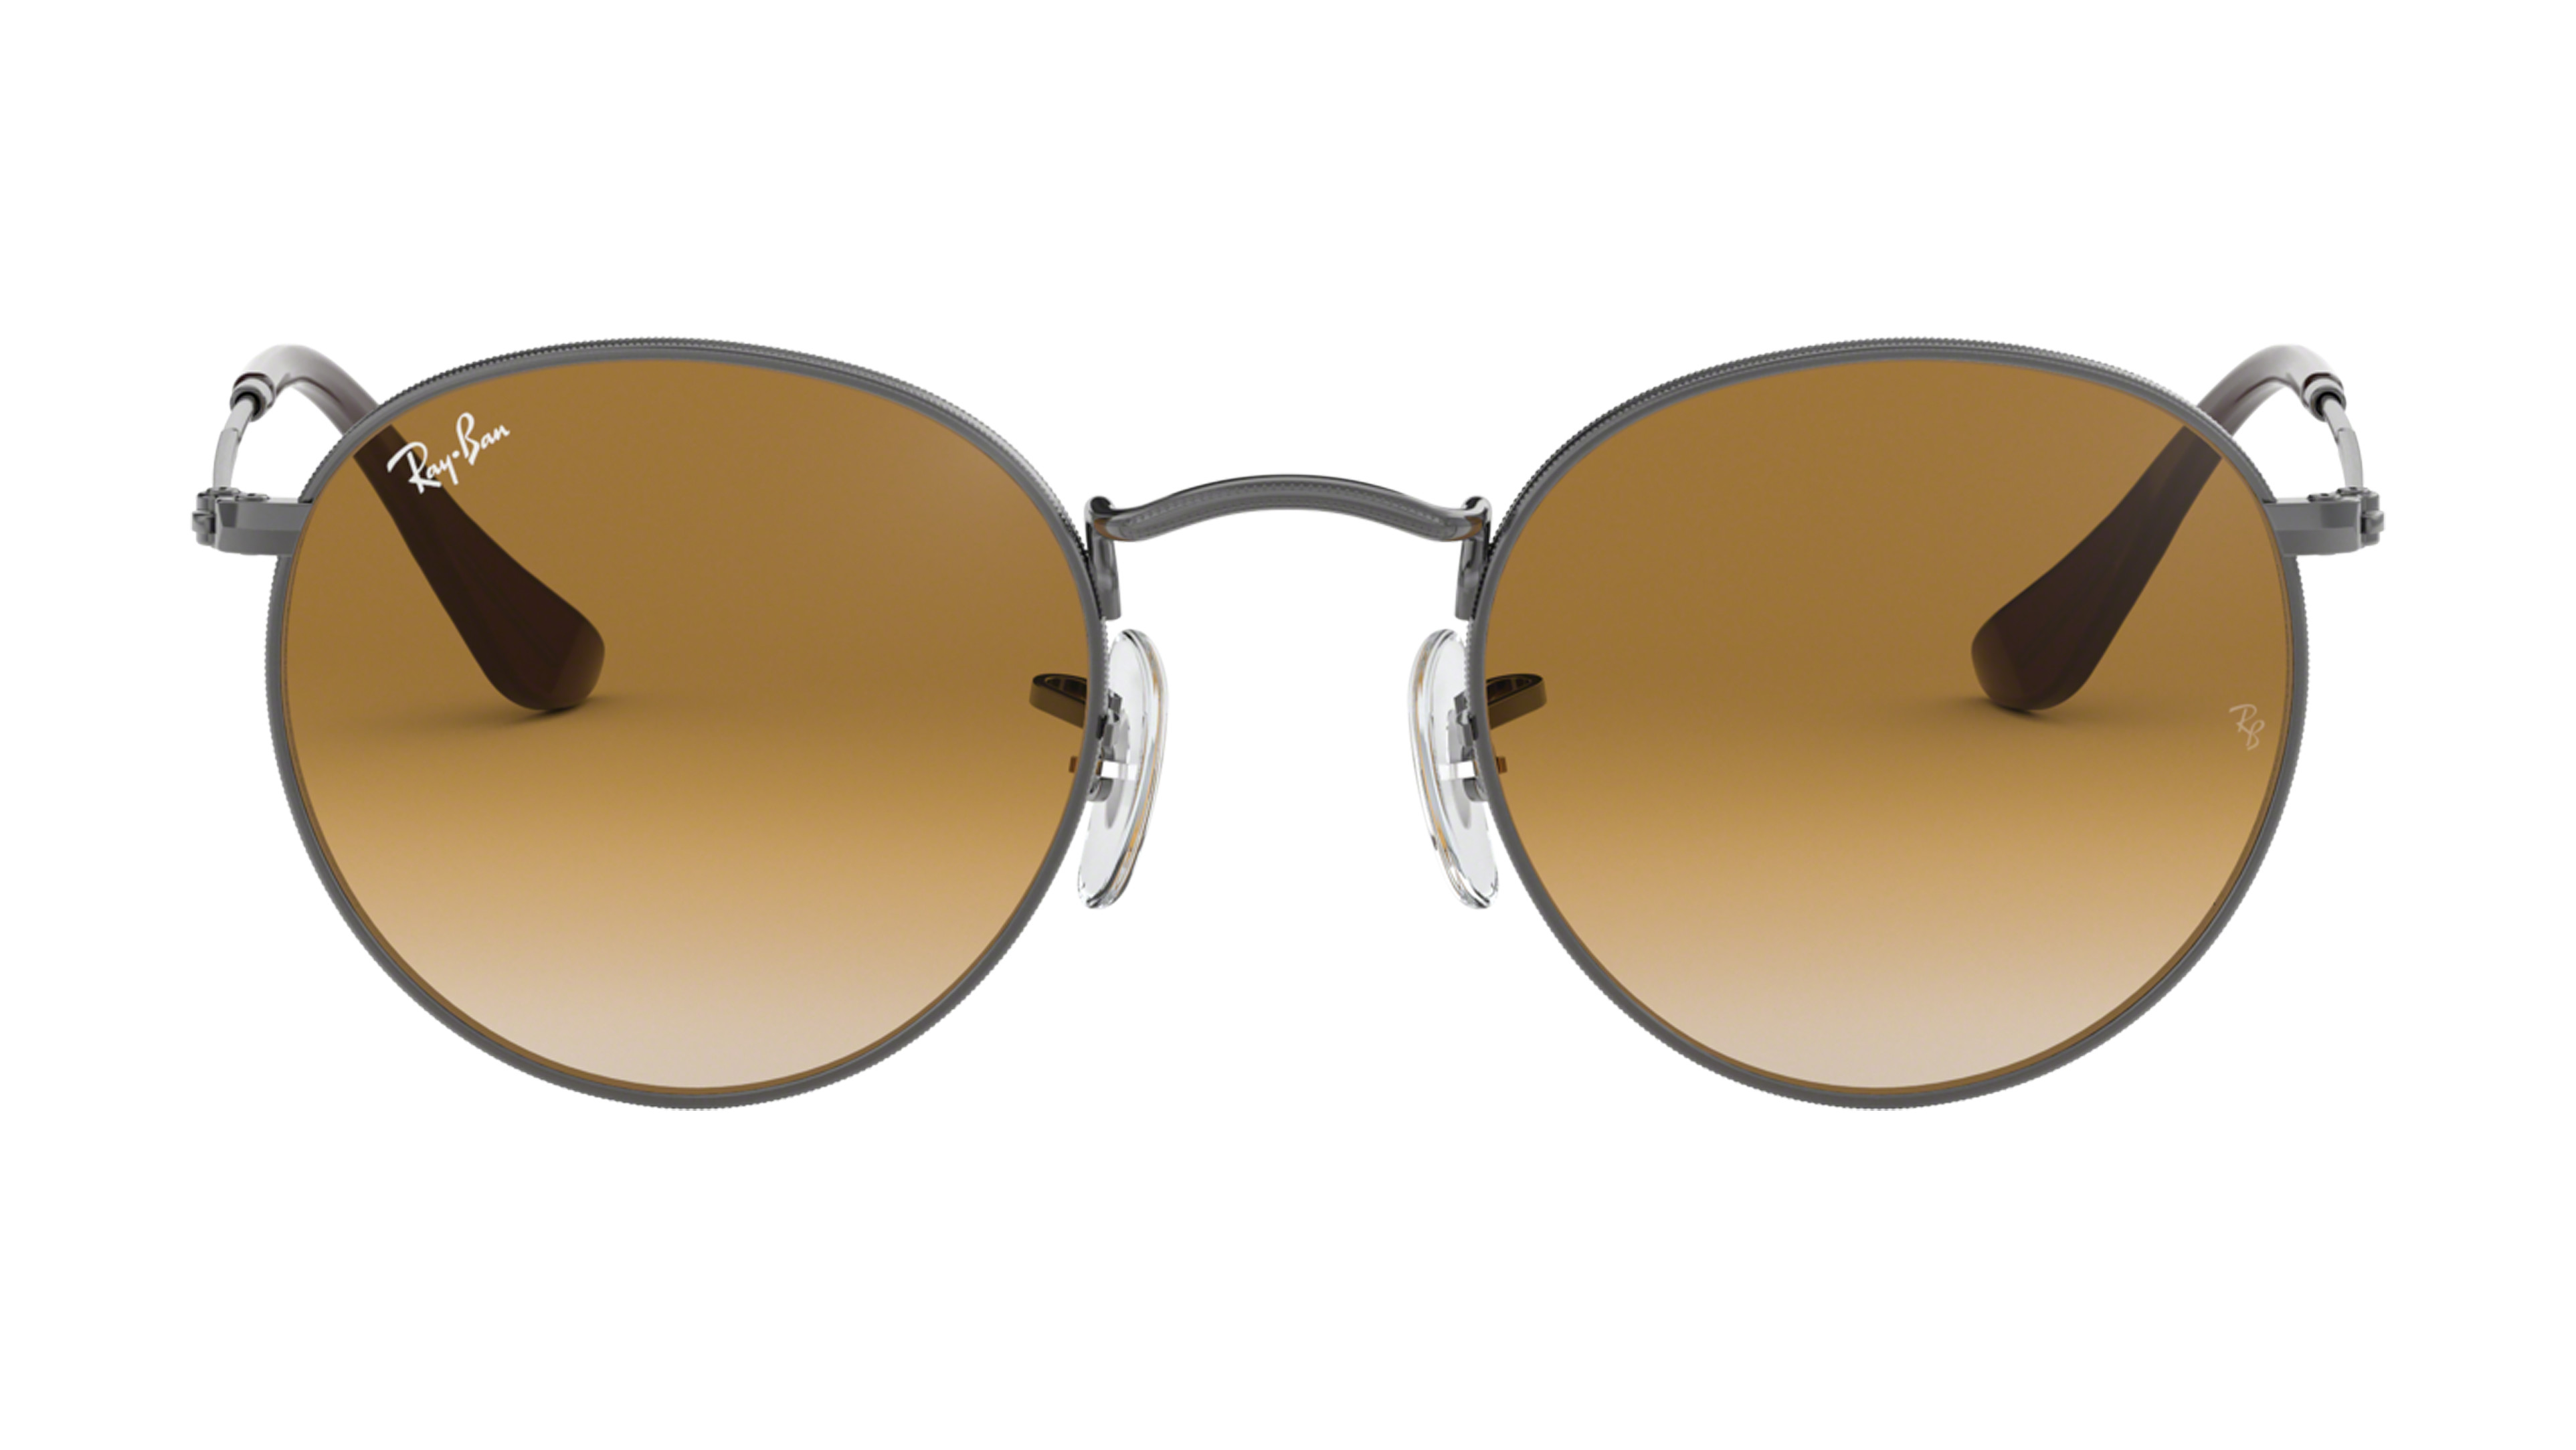 8053672878257-front-rayban